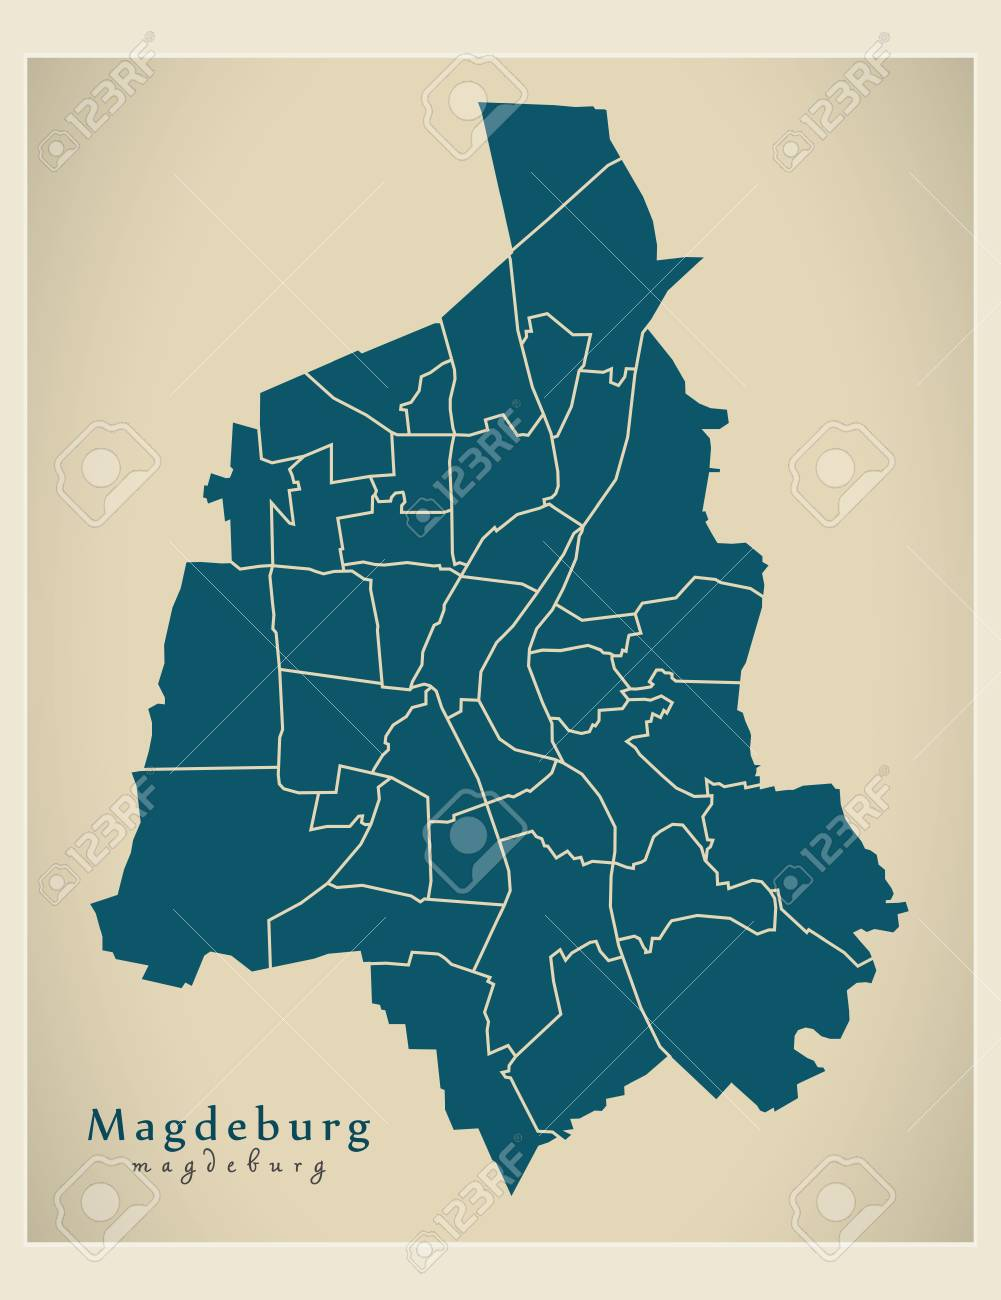 Modern City Map Magdeburg City Of Germany With Boroughs De Royalty